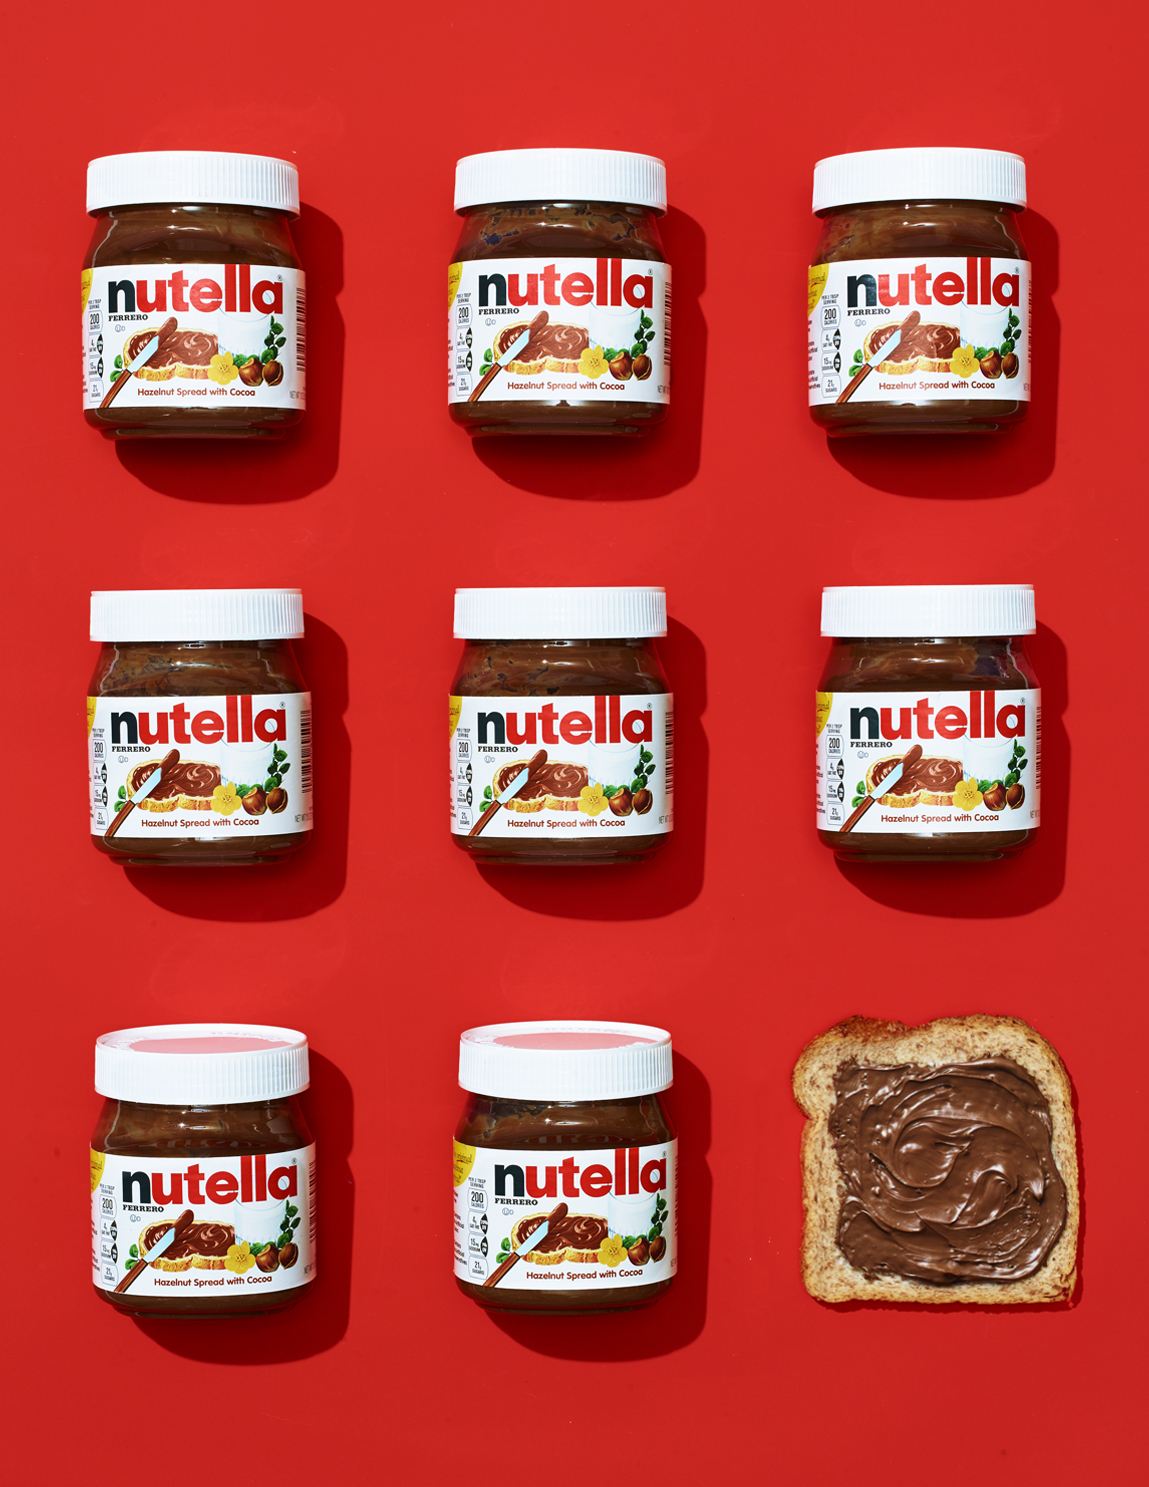 nutella-jars